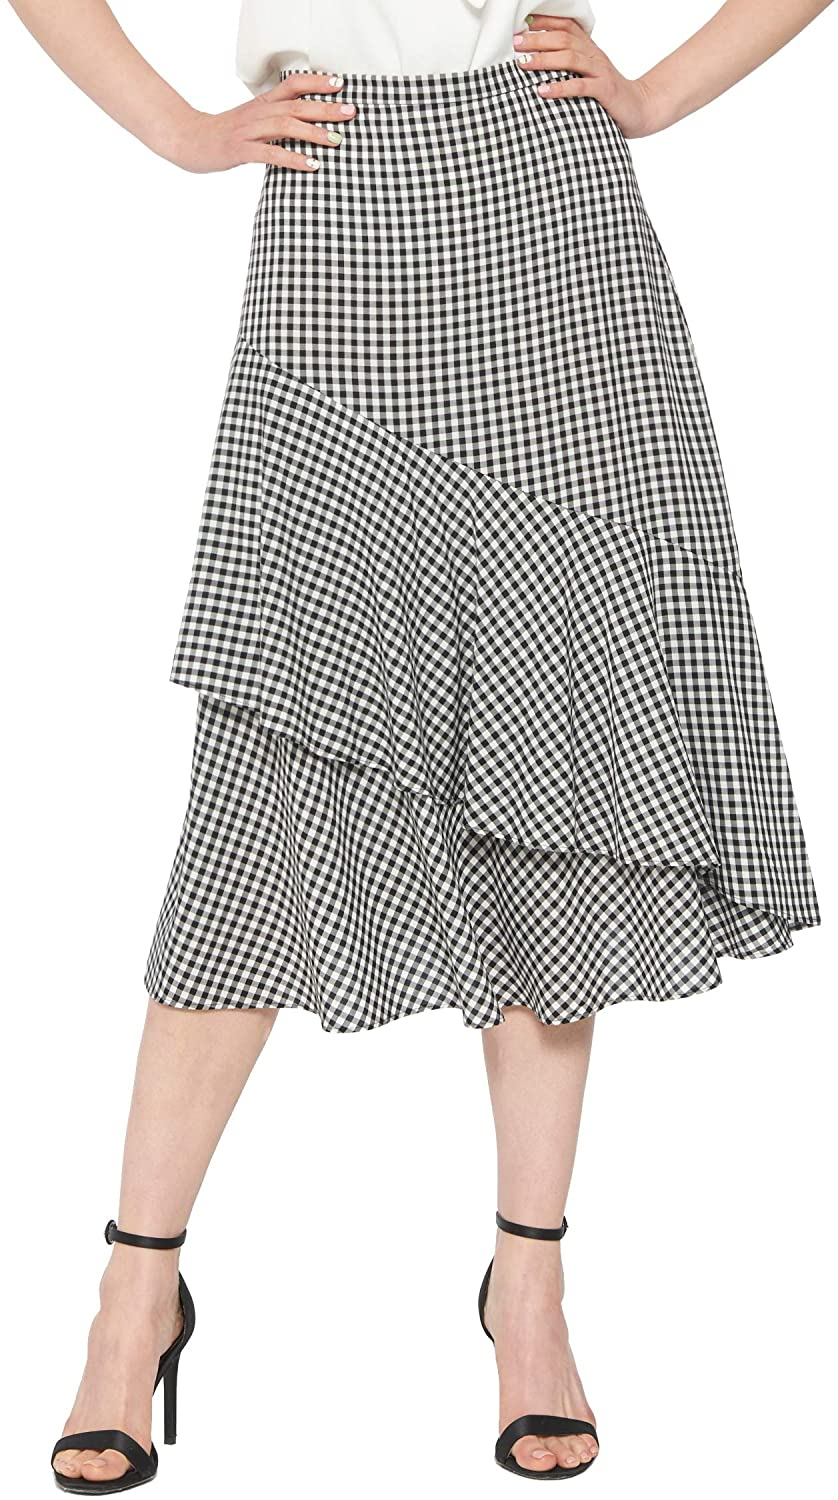 May You Be Women's High Waist Flowy Gingham Check Tiered Ruffle Midi Skirt